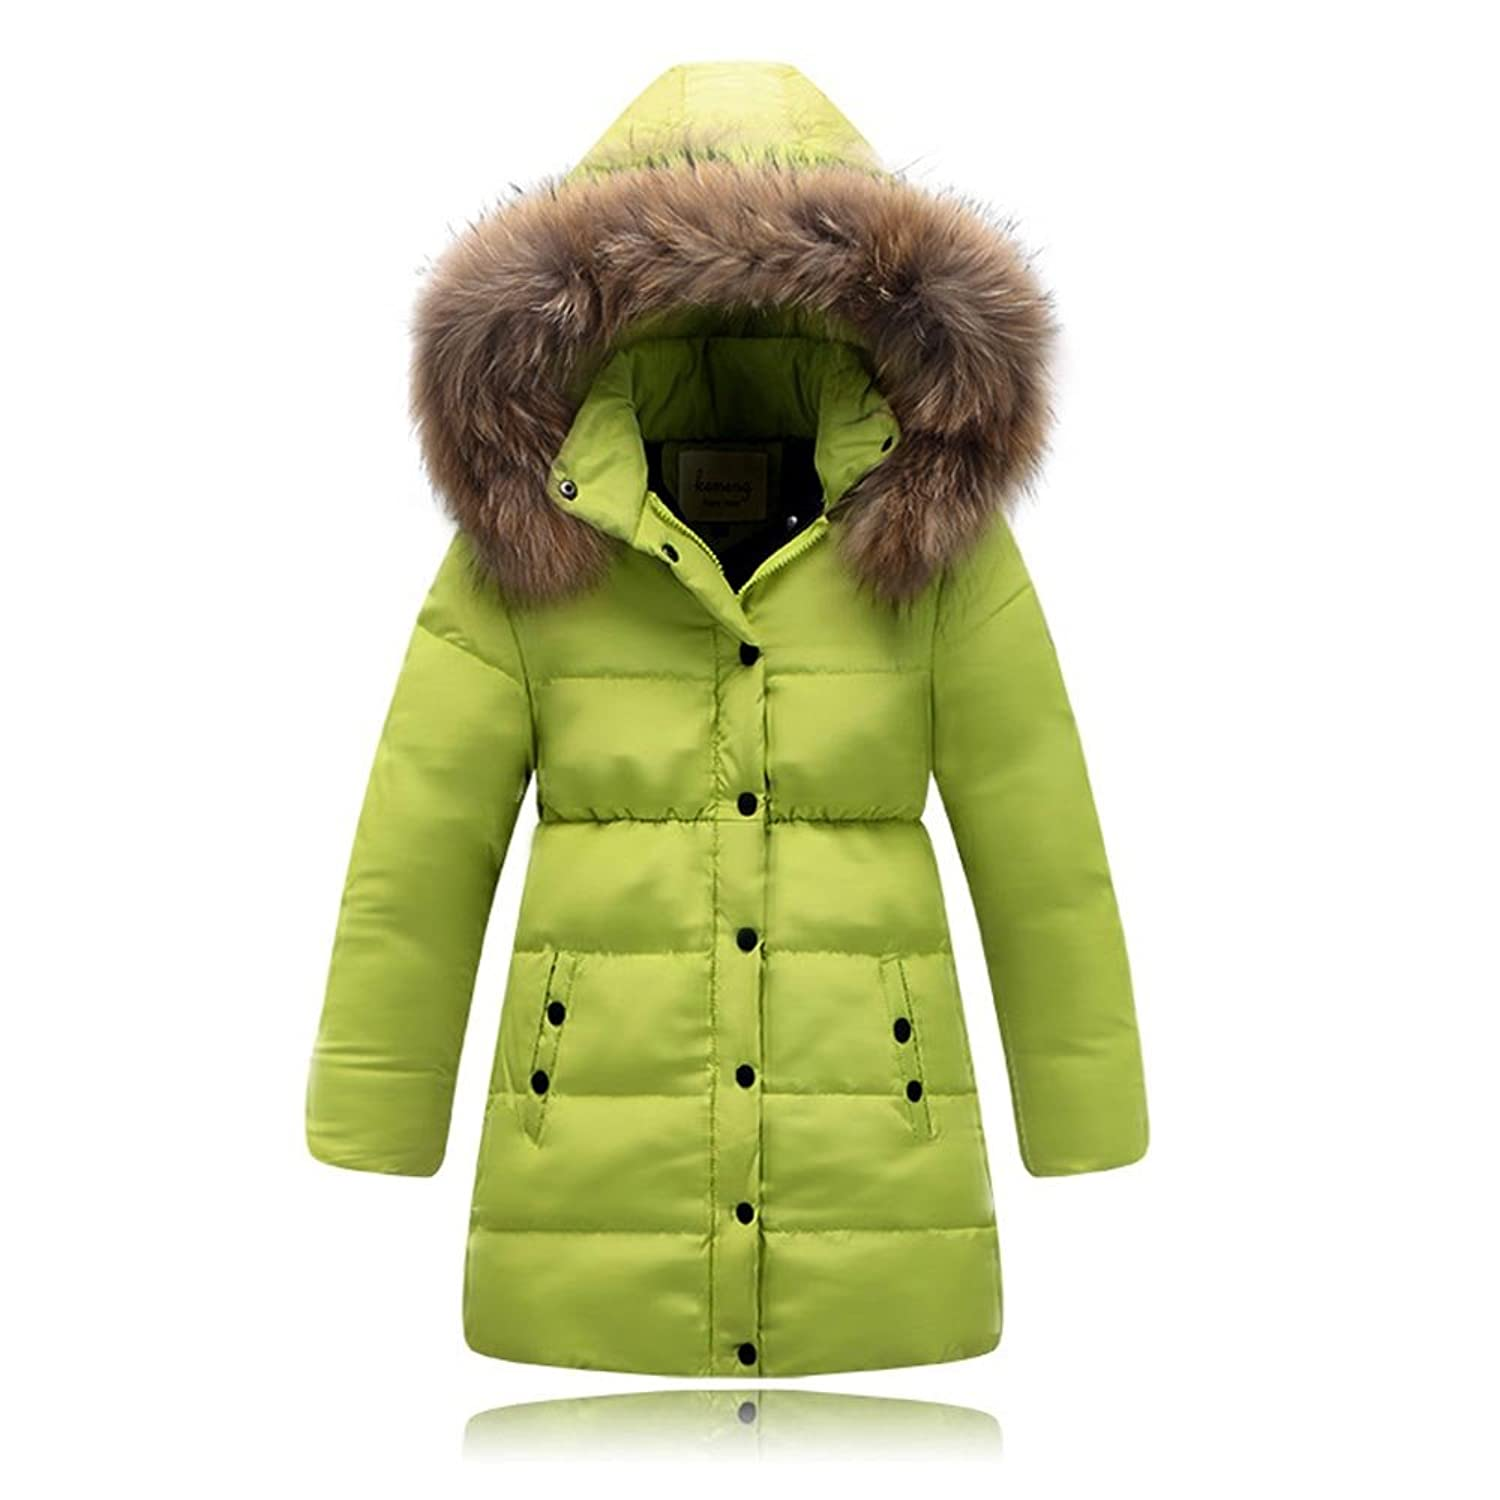 Amazon.com: Seeduck Big Girls' Winter Parka Down Coat Puffer ...